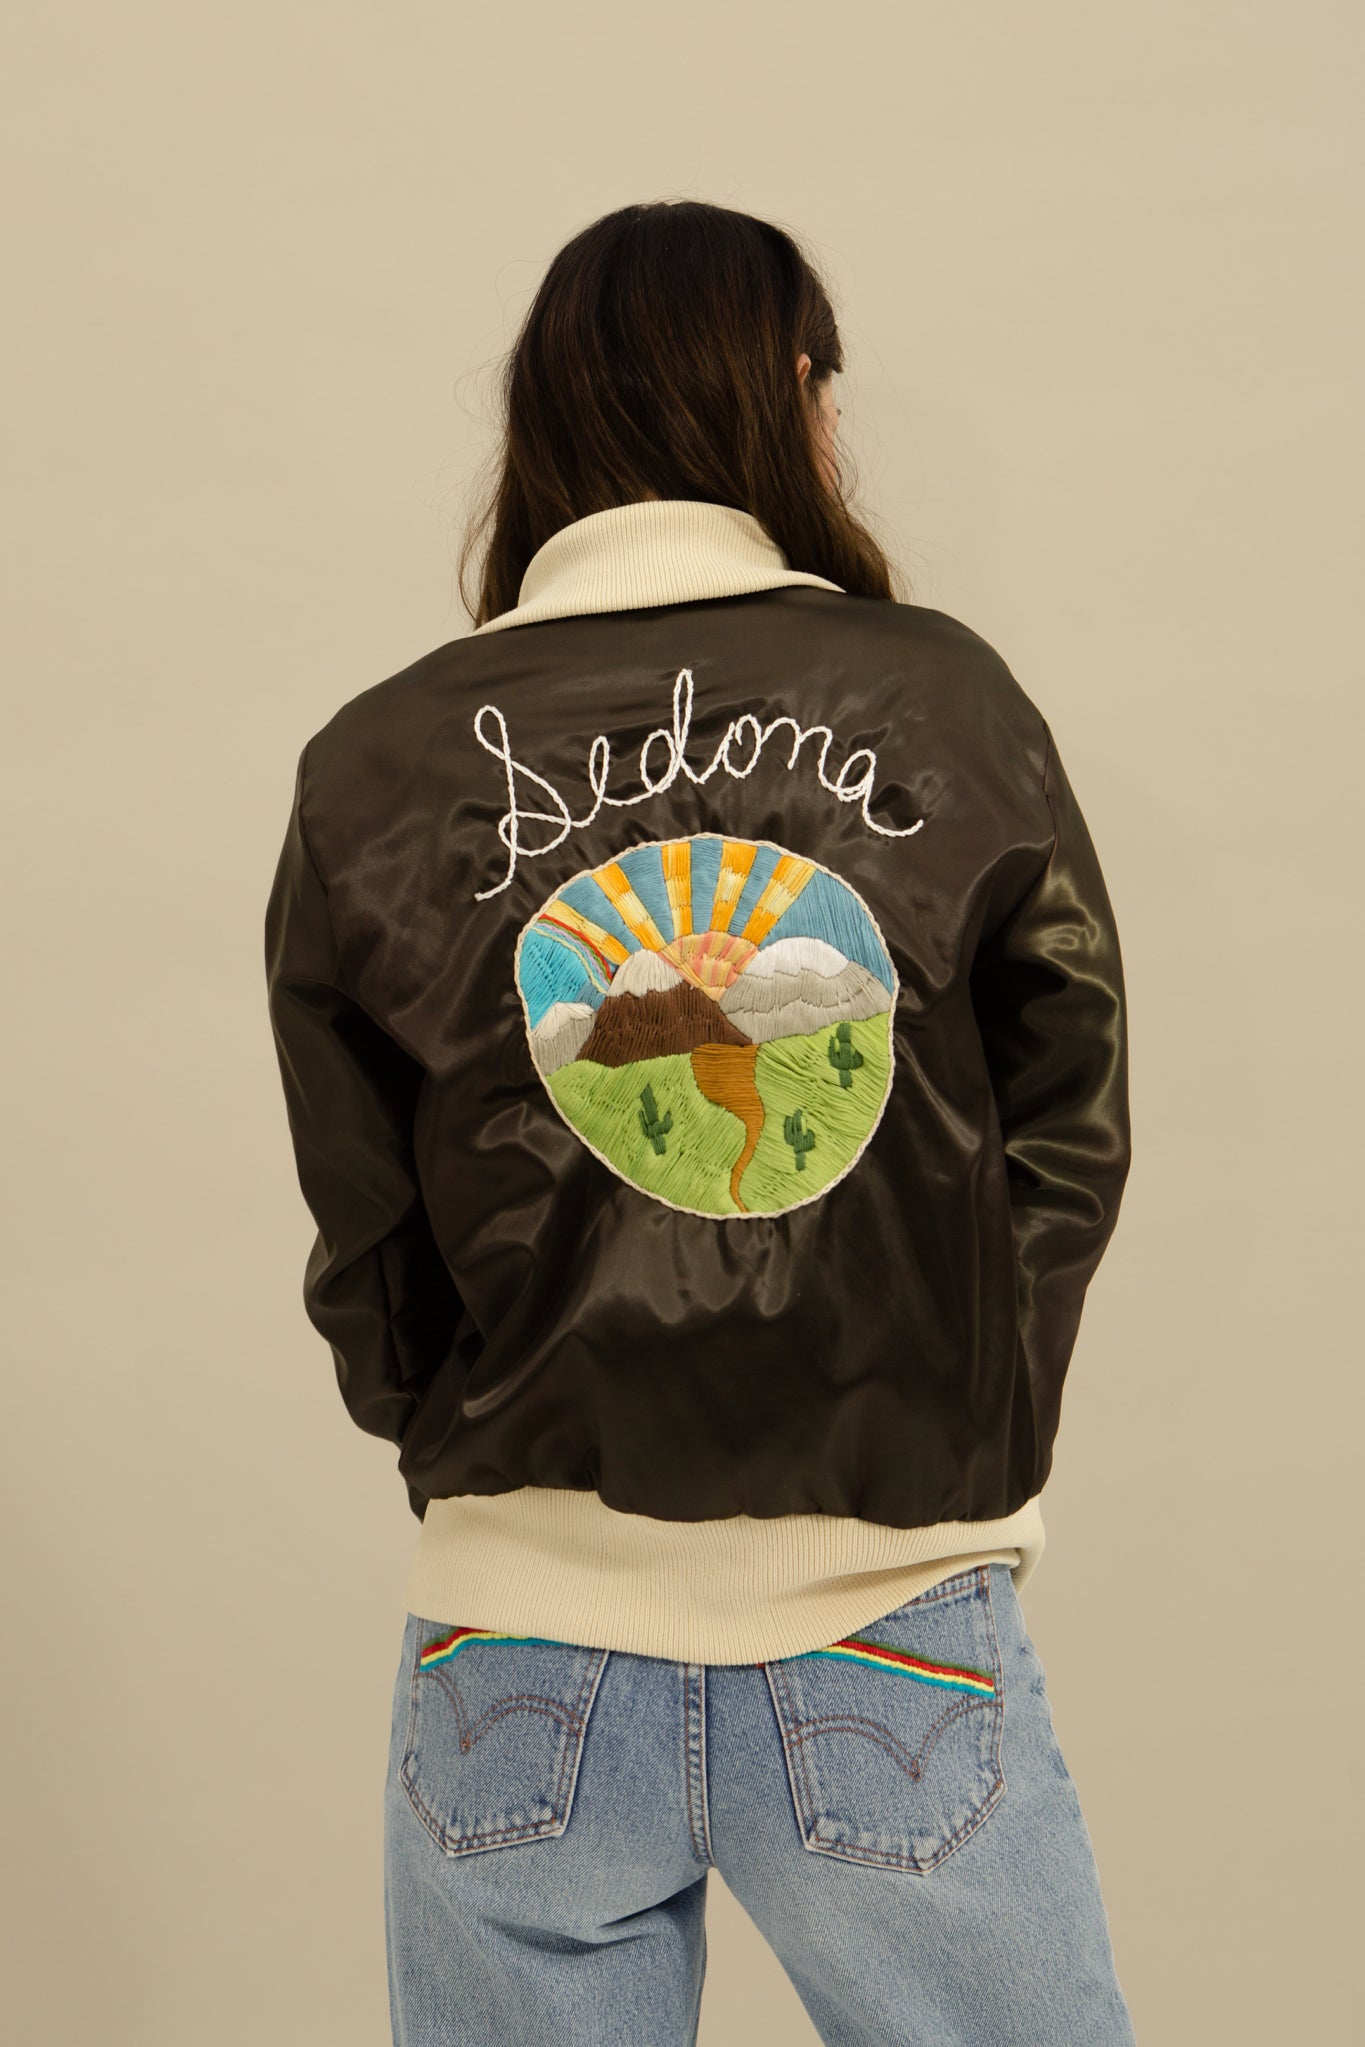 One of a Kind—Sedona Bomber Jacket